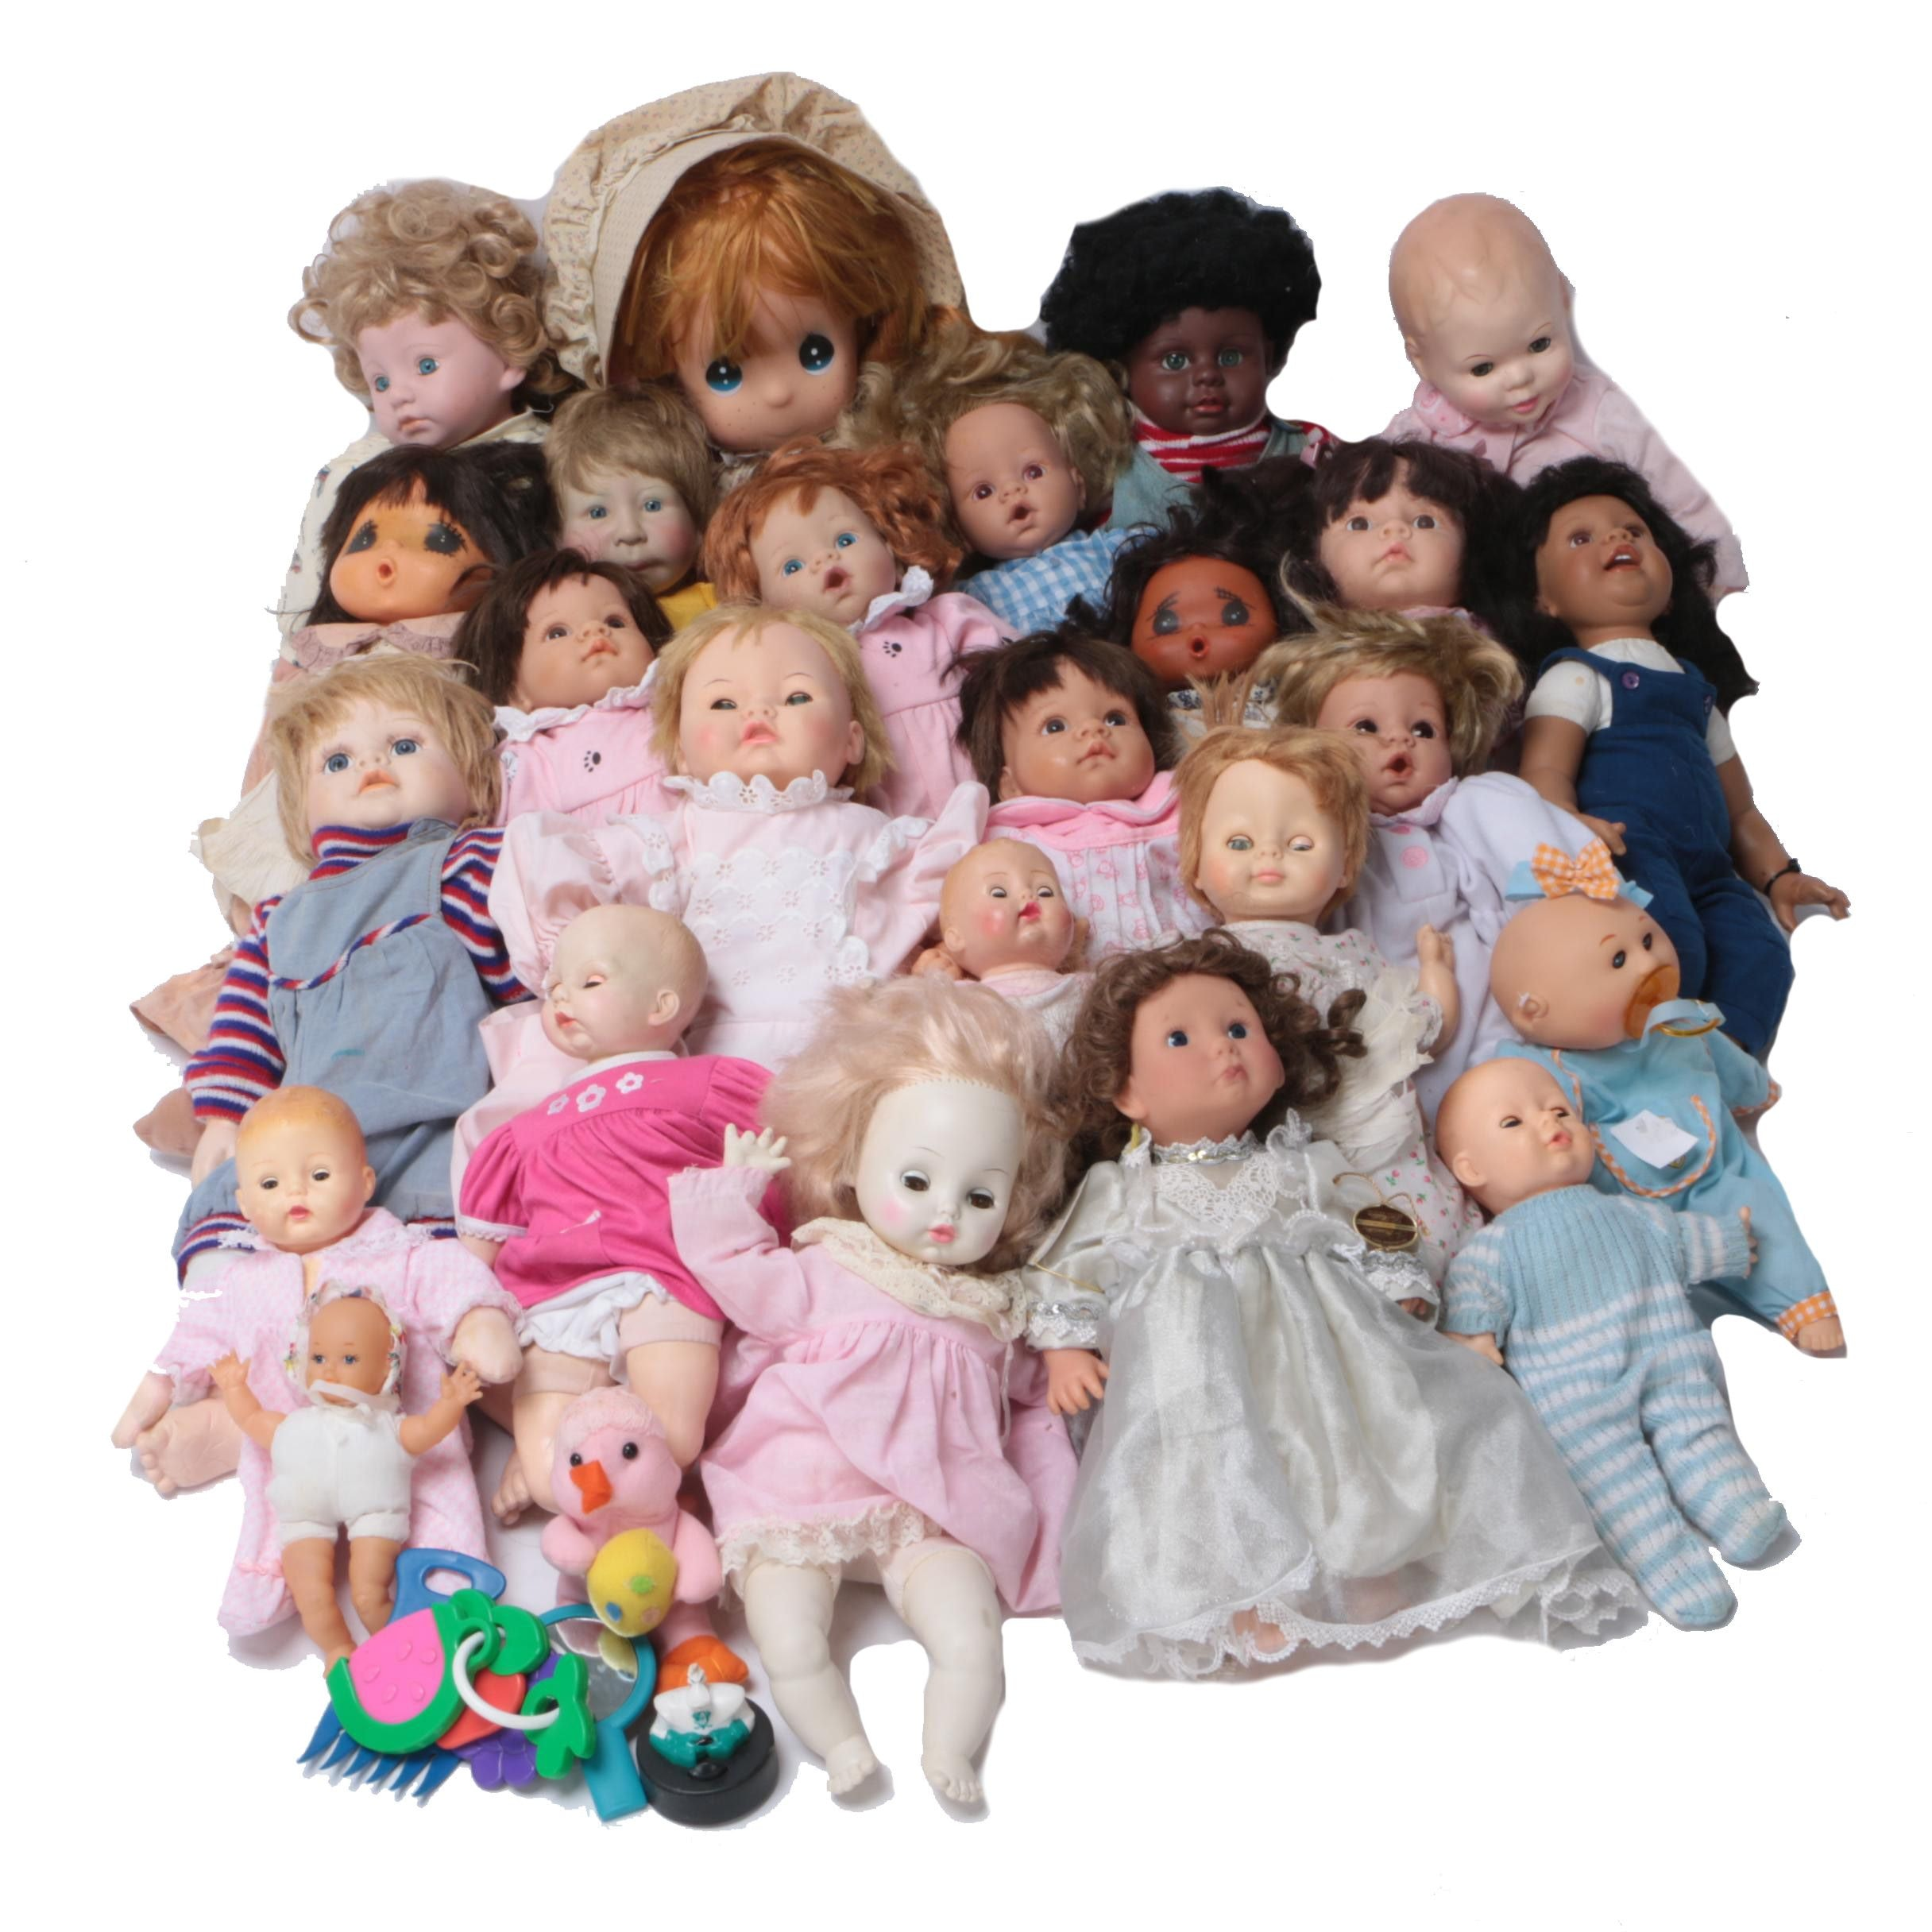 Vintage and Contemporary Baby Dolls Featuring Lee Middleton